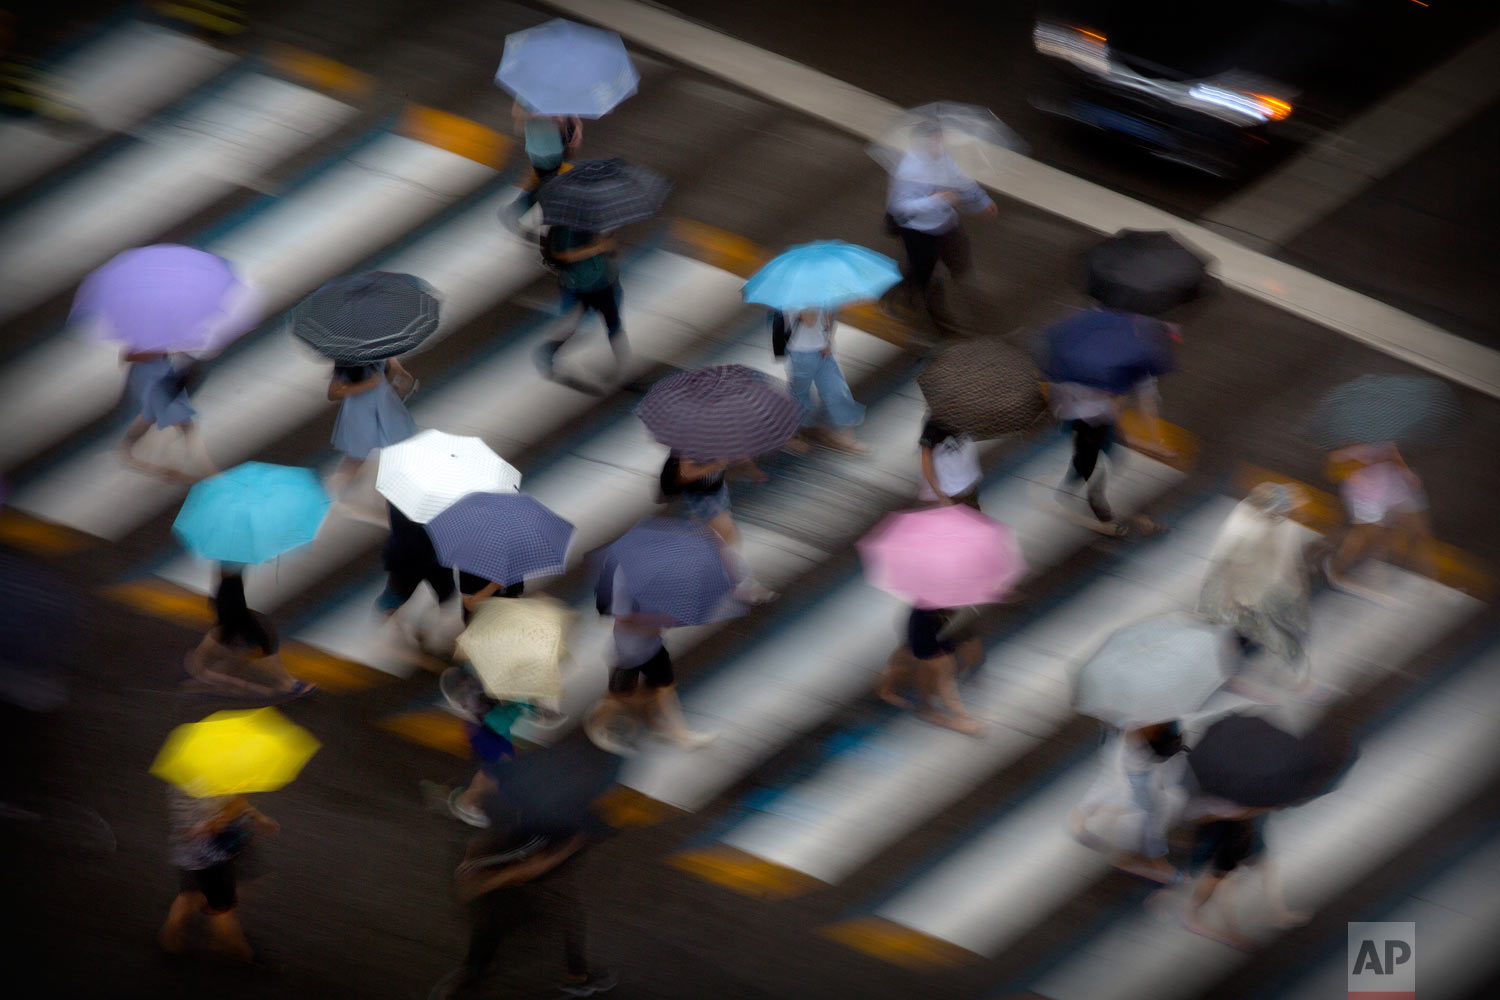 In this photo taken with a long exposure, pedestrians carry umbrellas as they cross a street in Beijing, Tuesday, July 24, 2018. The remnants of Typhoon Ampil brought heavy rain to China's capital on Tuesday morning. (AP Photo/Mark Schiefelbein)